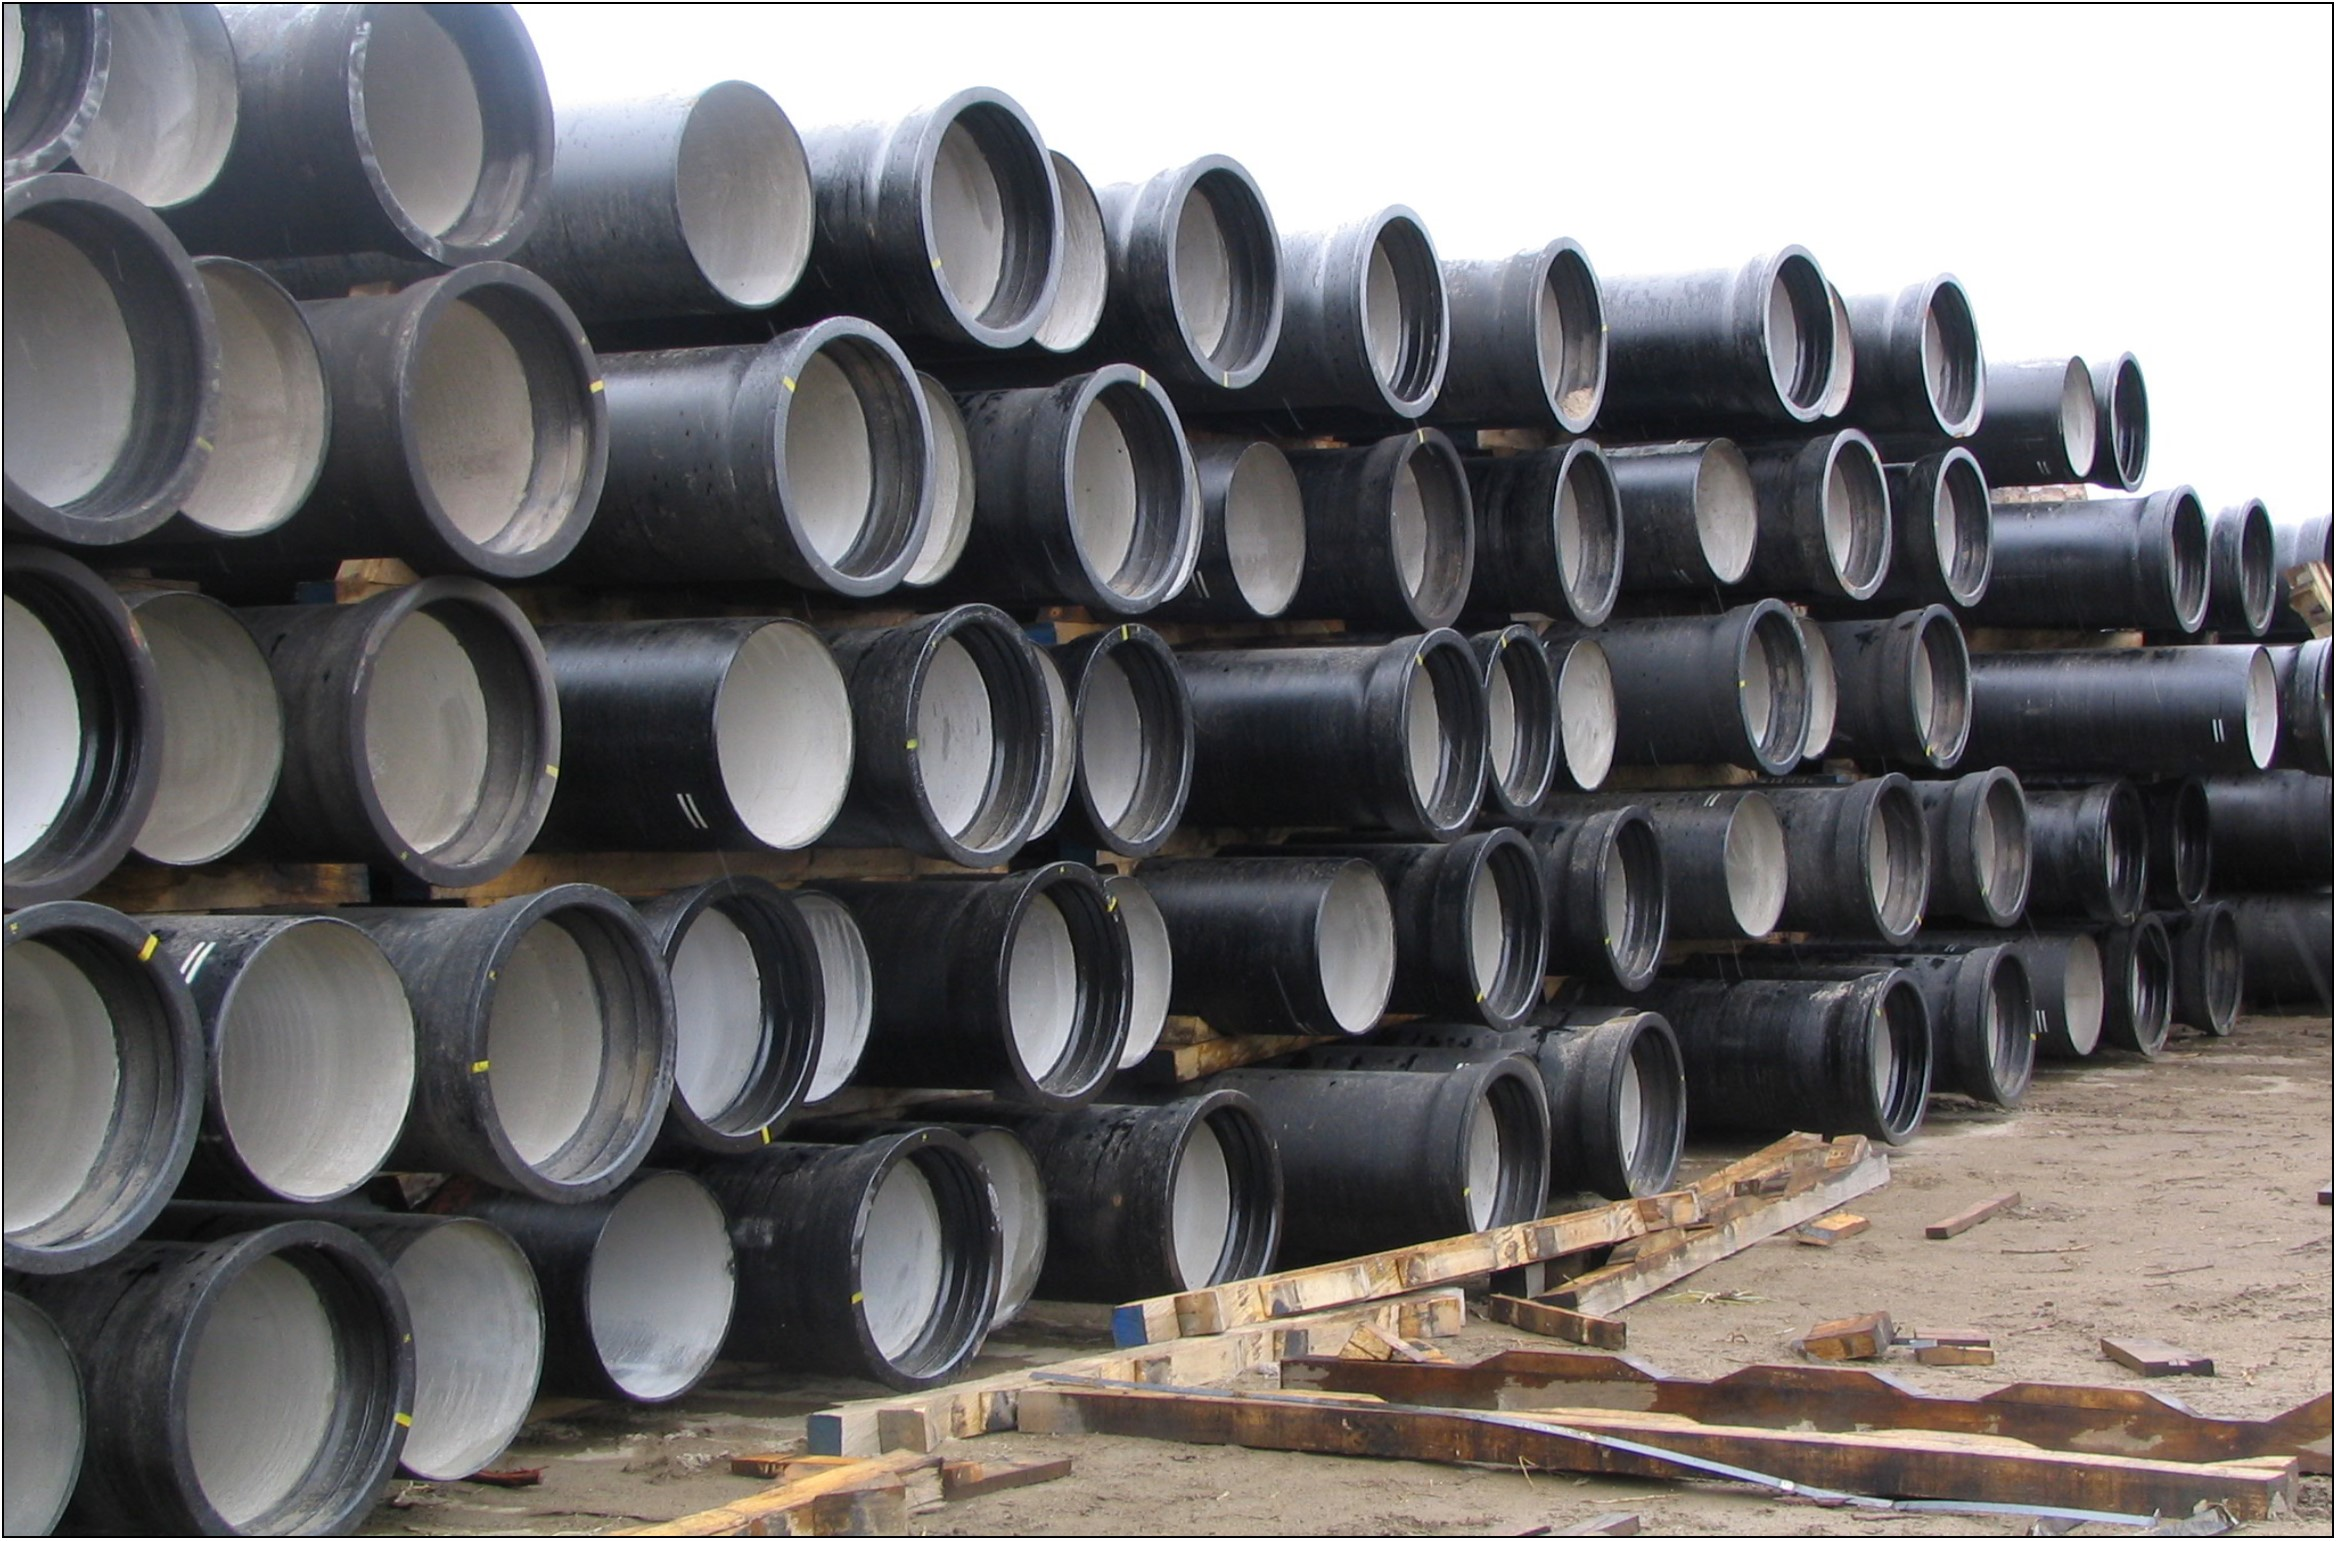 pipes stack.jpg